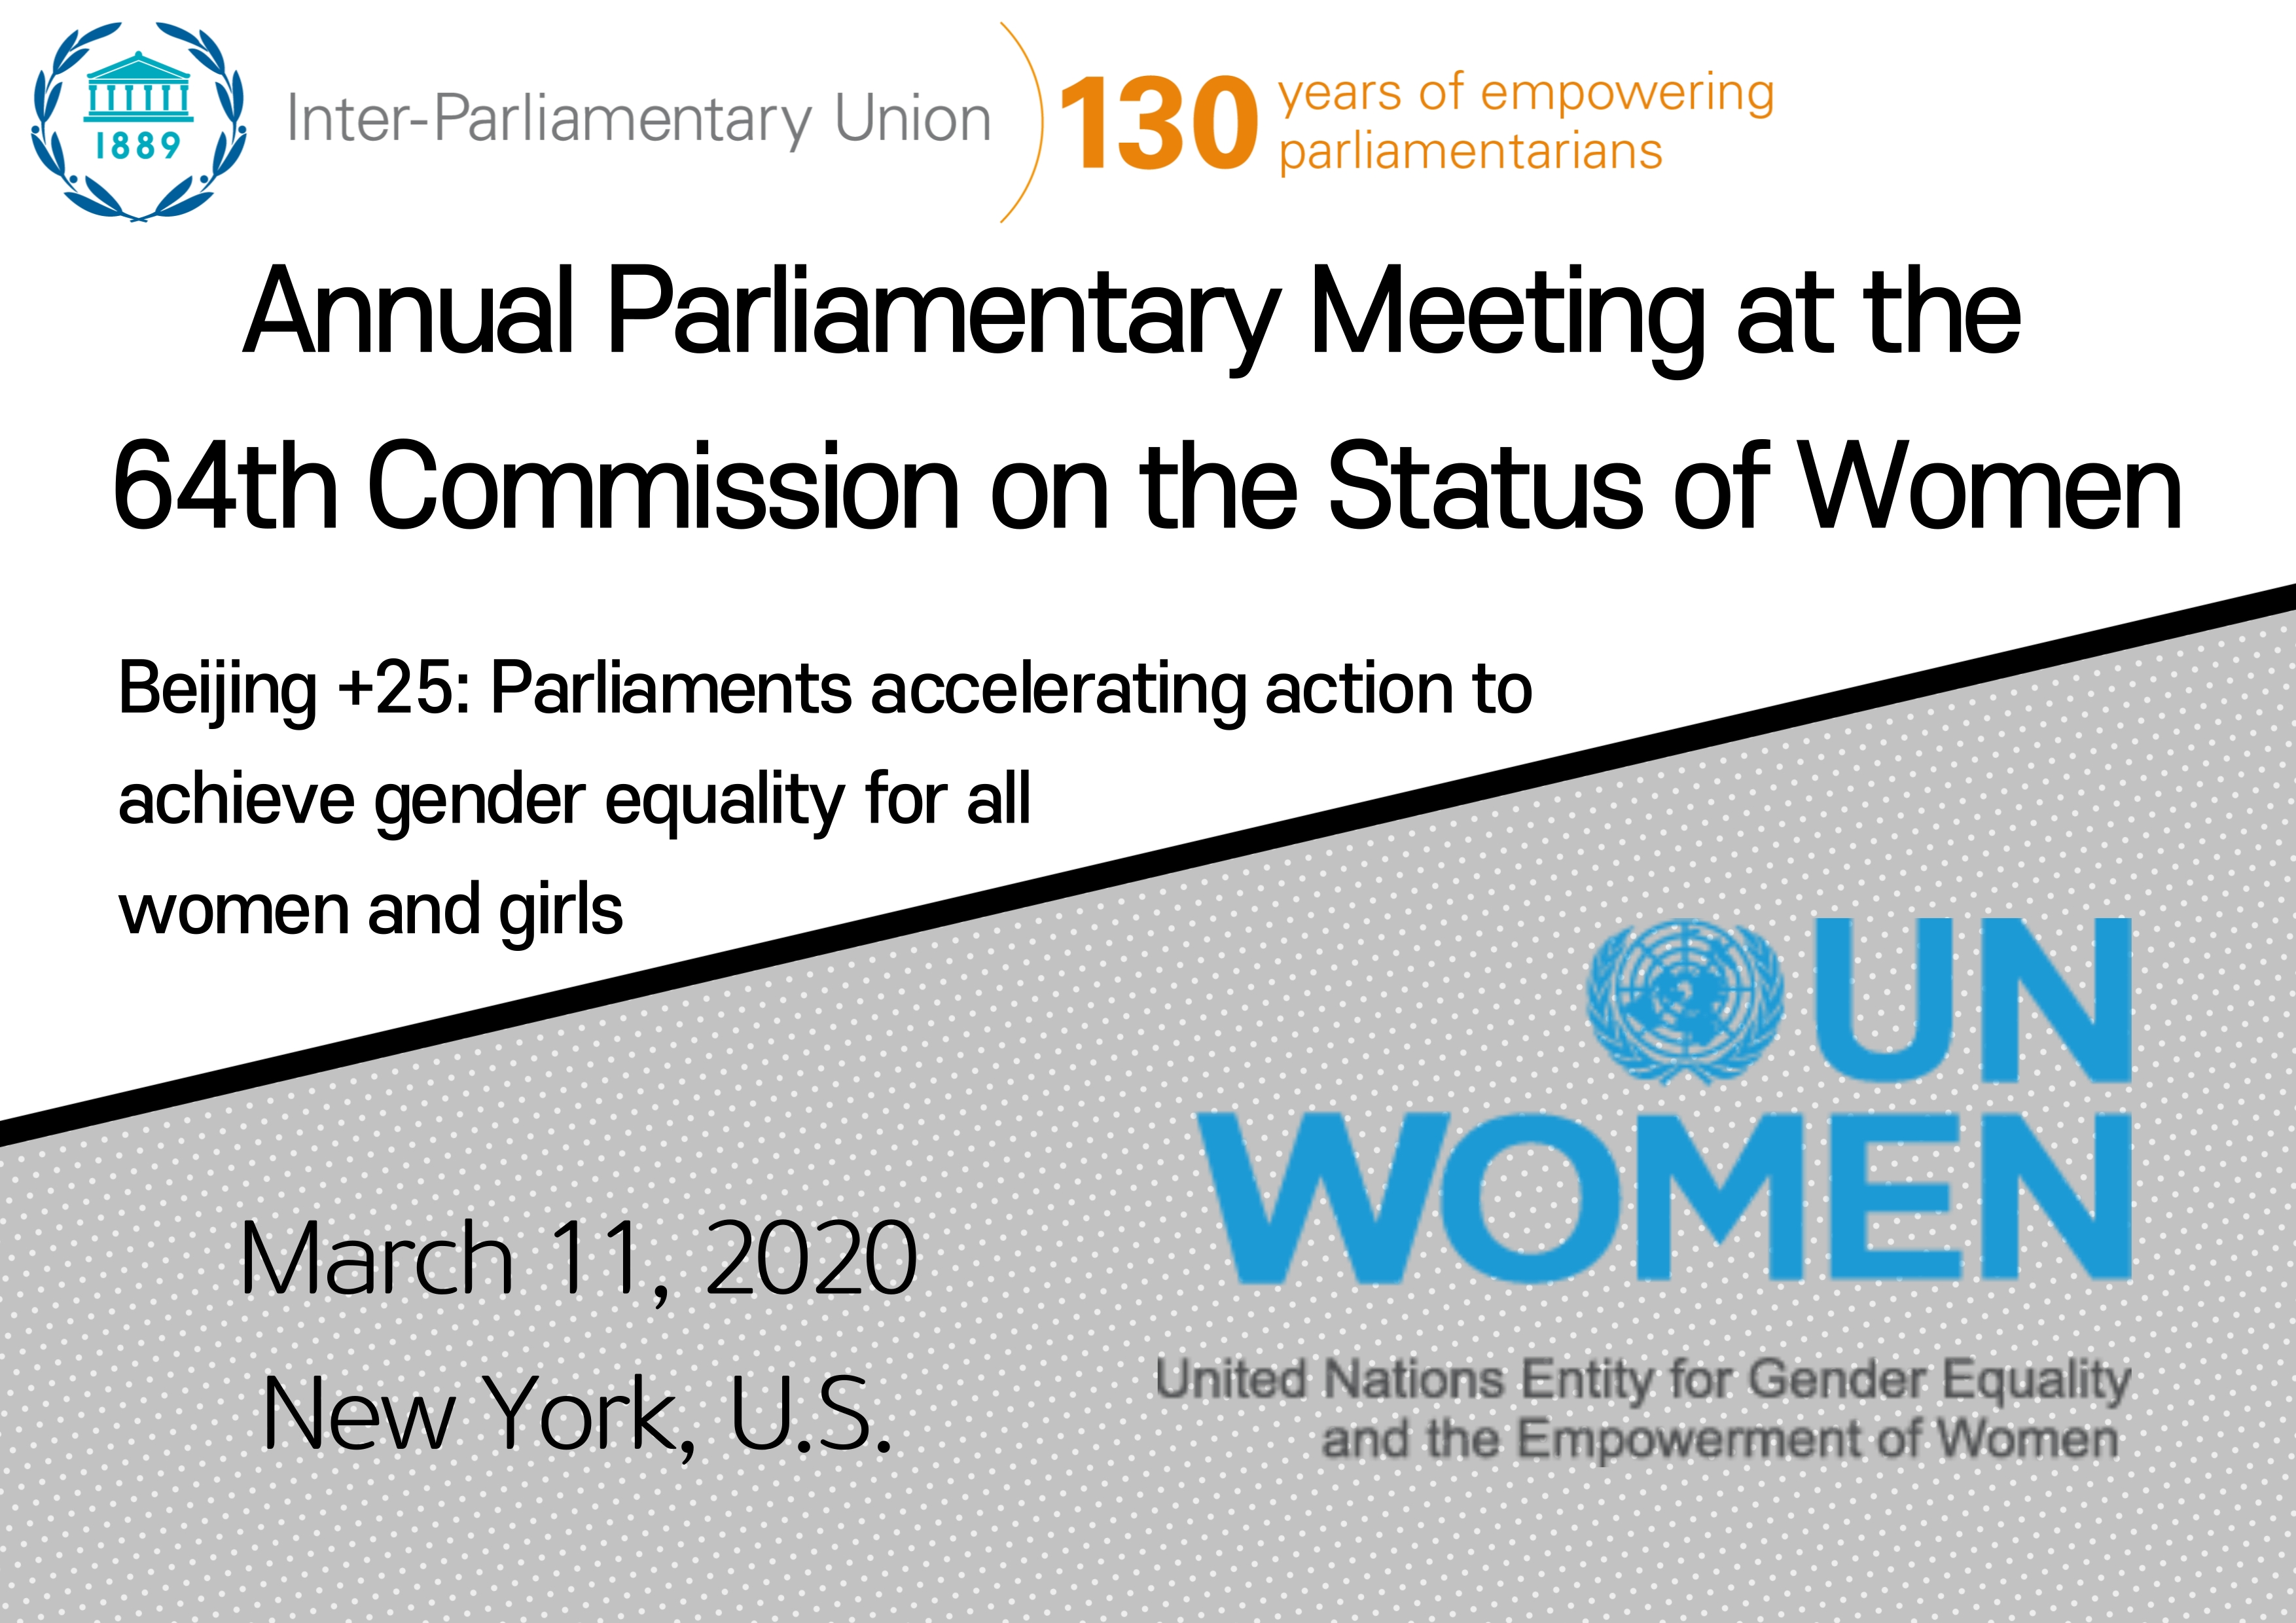 Annual Parliamentary Meeting at the 64th Commission on the Status of Women